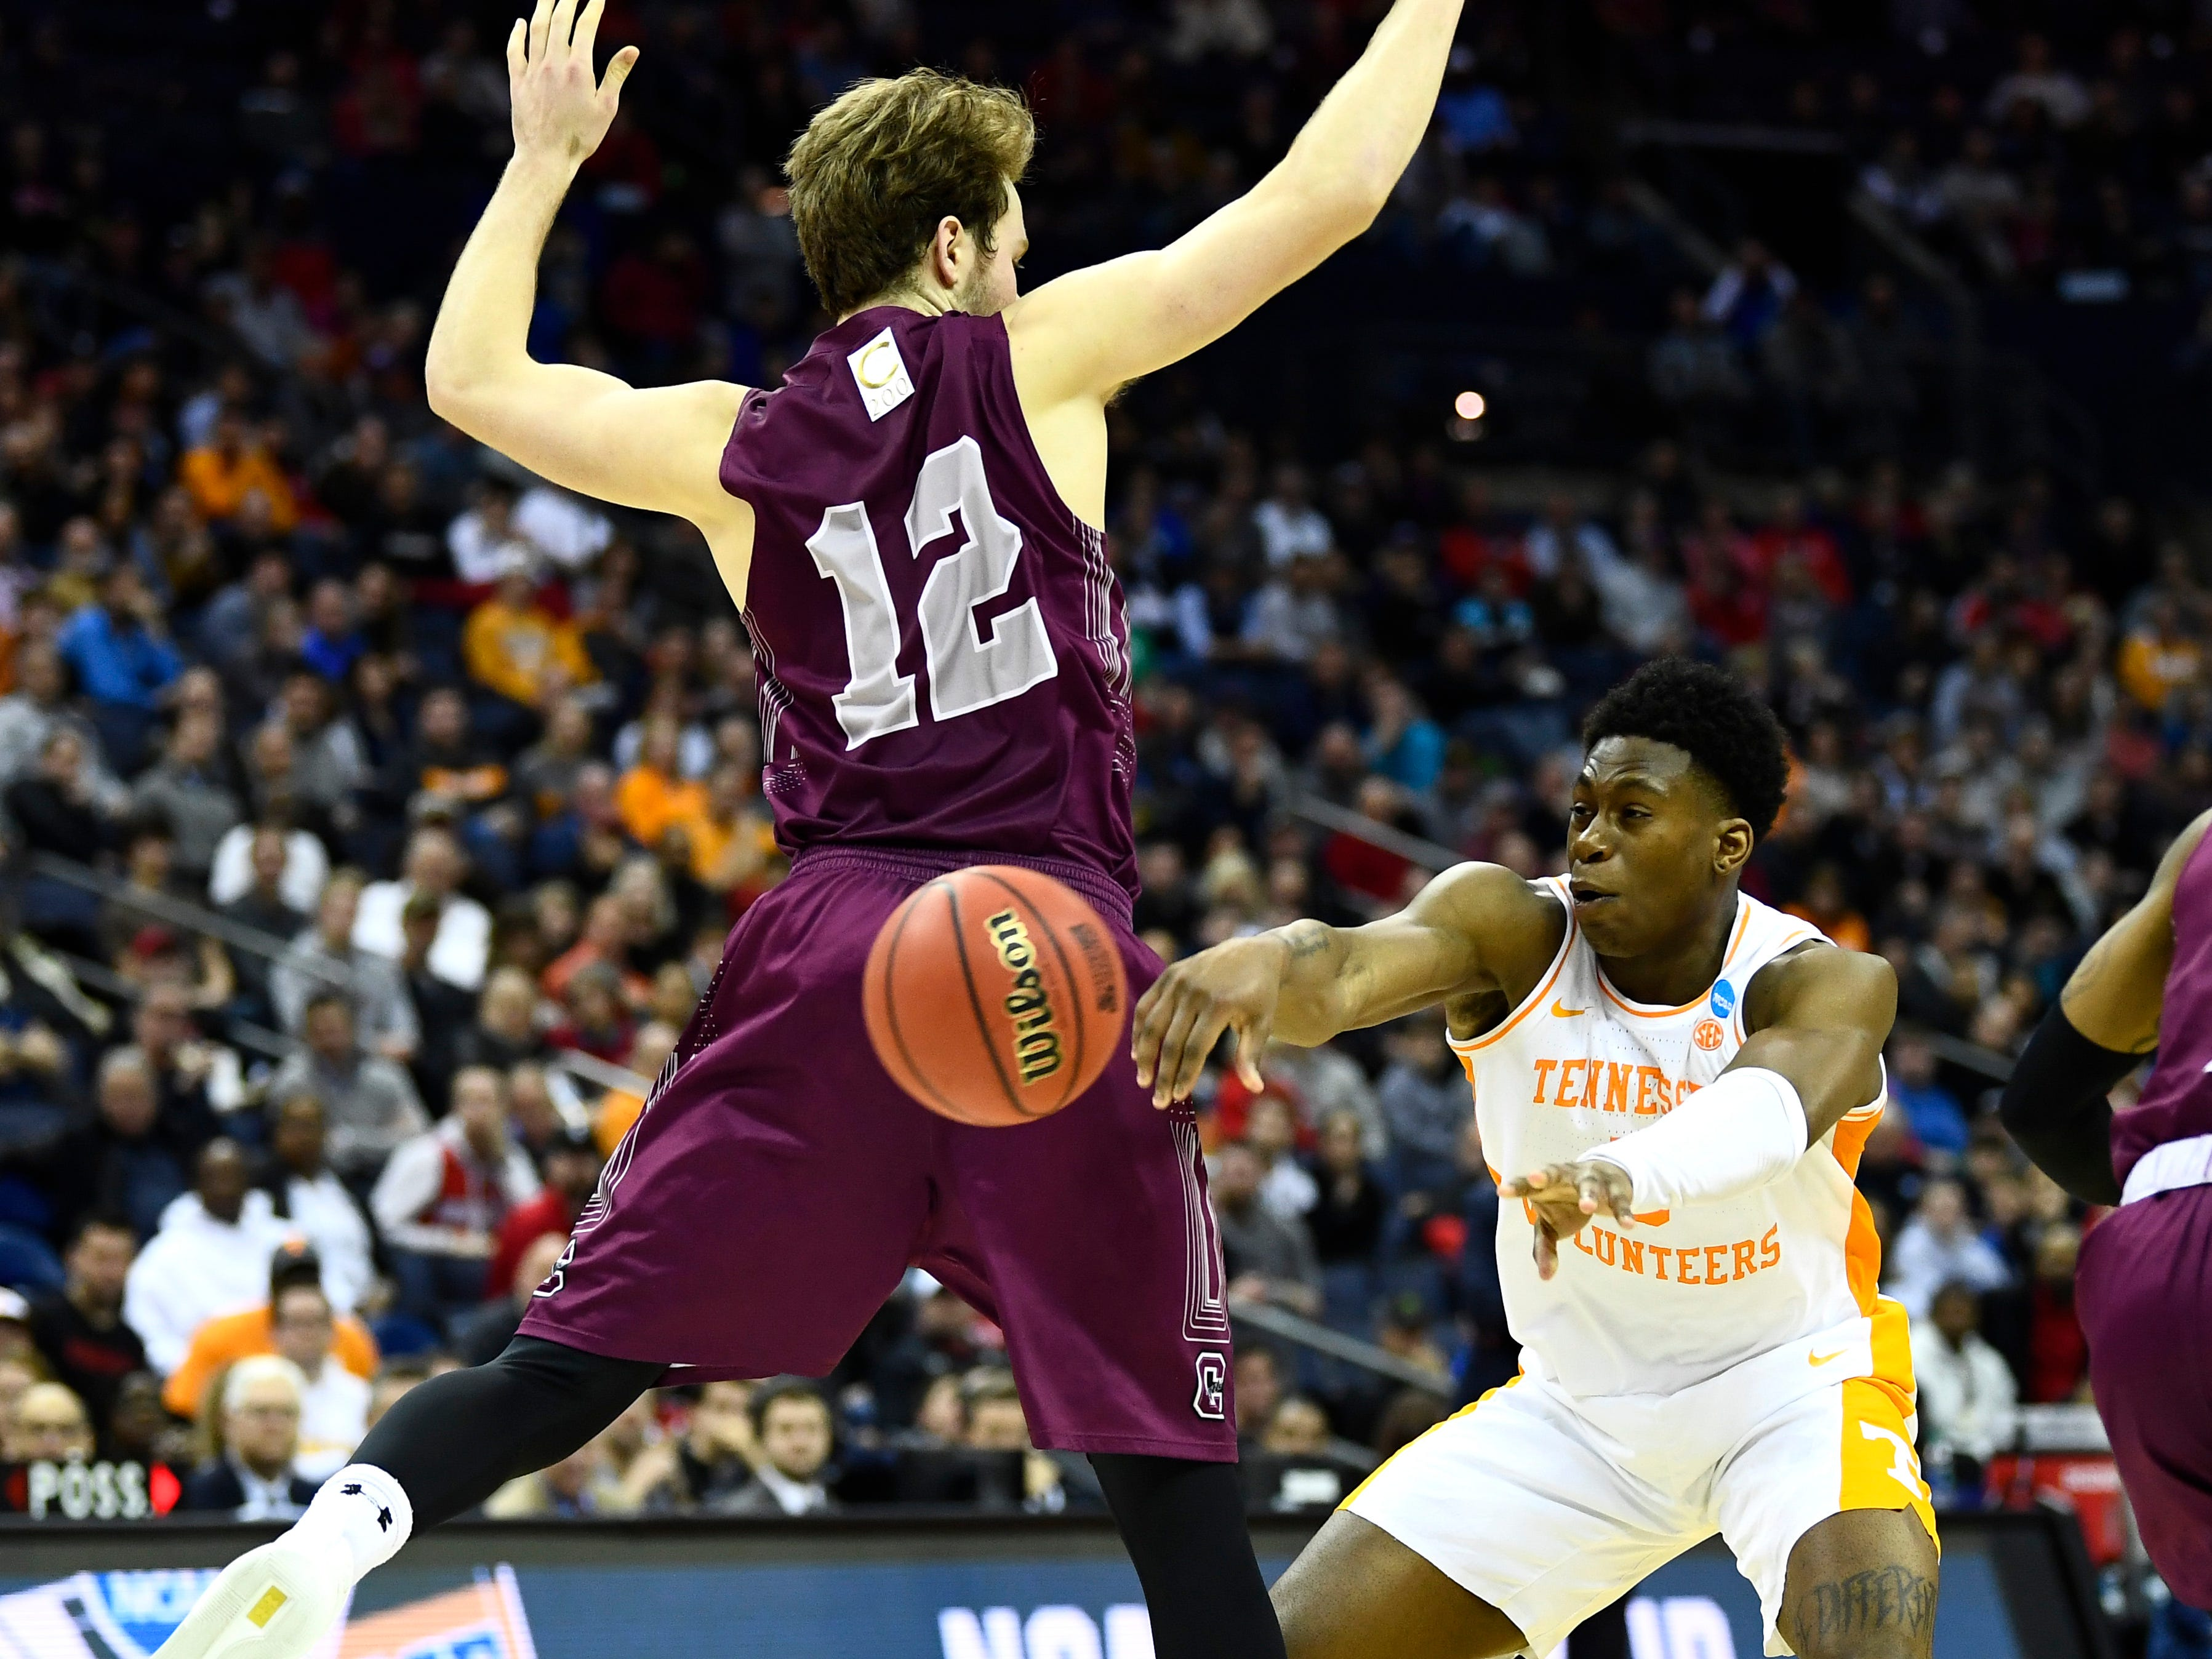 Tennessee guard Admiral Schofield (5) passes defended by Colgate center Dana Batt (12) during their first round game of the NCAA Tournament at Nationwide Arena in Columbus, Ohio, on Friday, March 22, 2019.